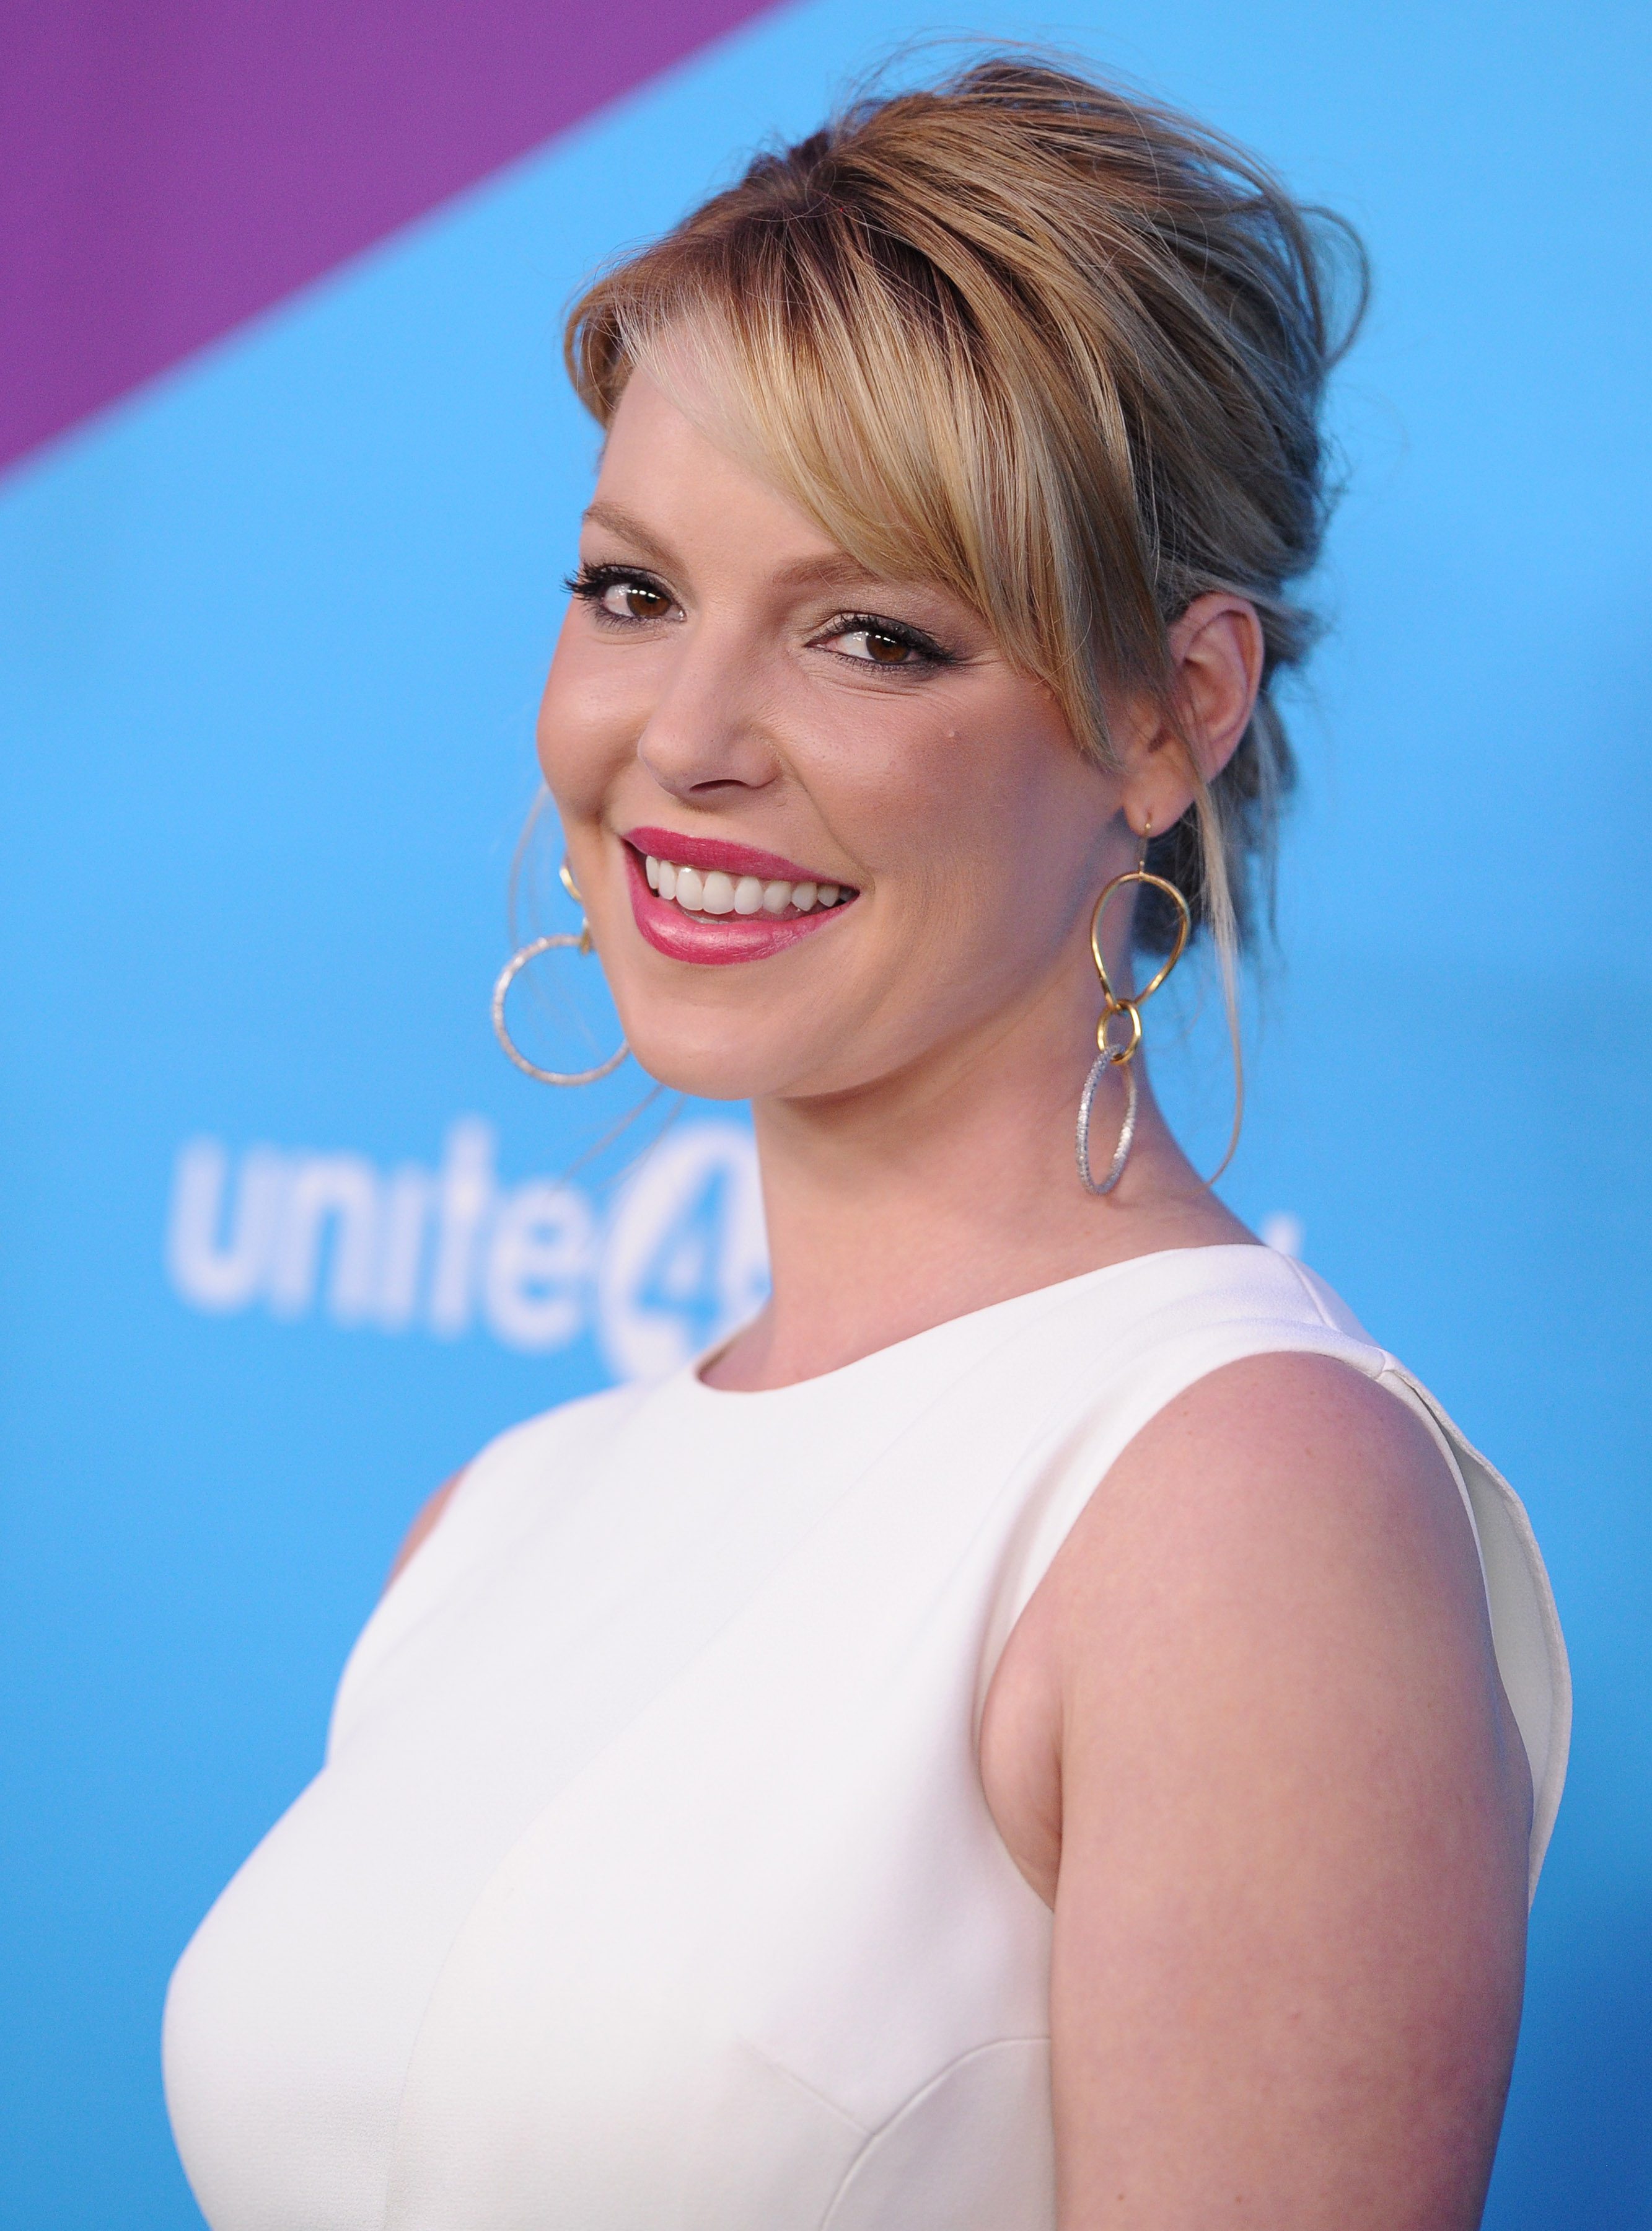 Actress Katherine Heigl arrives at an event hosted by unite4:good and Variety in Los Angeles on Feb. 27, 2014